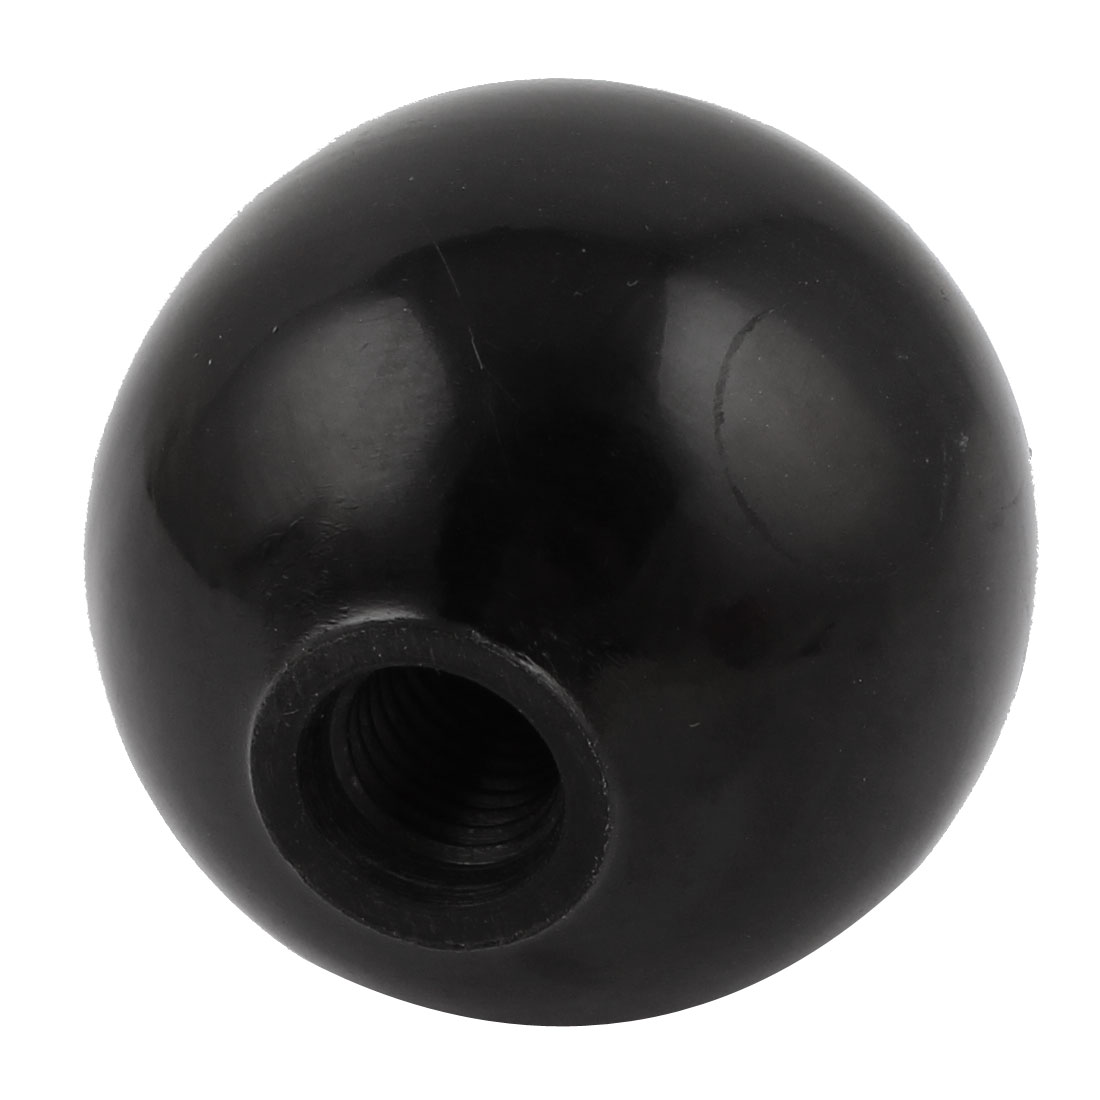 49mm Height 50mm Dia M12x42mm Thread Black Plastic Handgrip Ball Knob